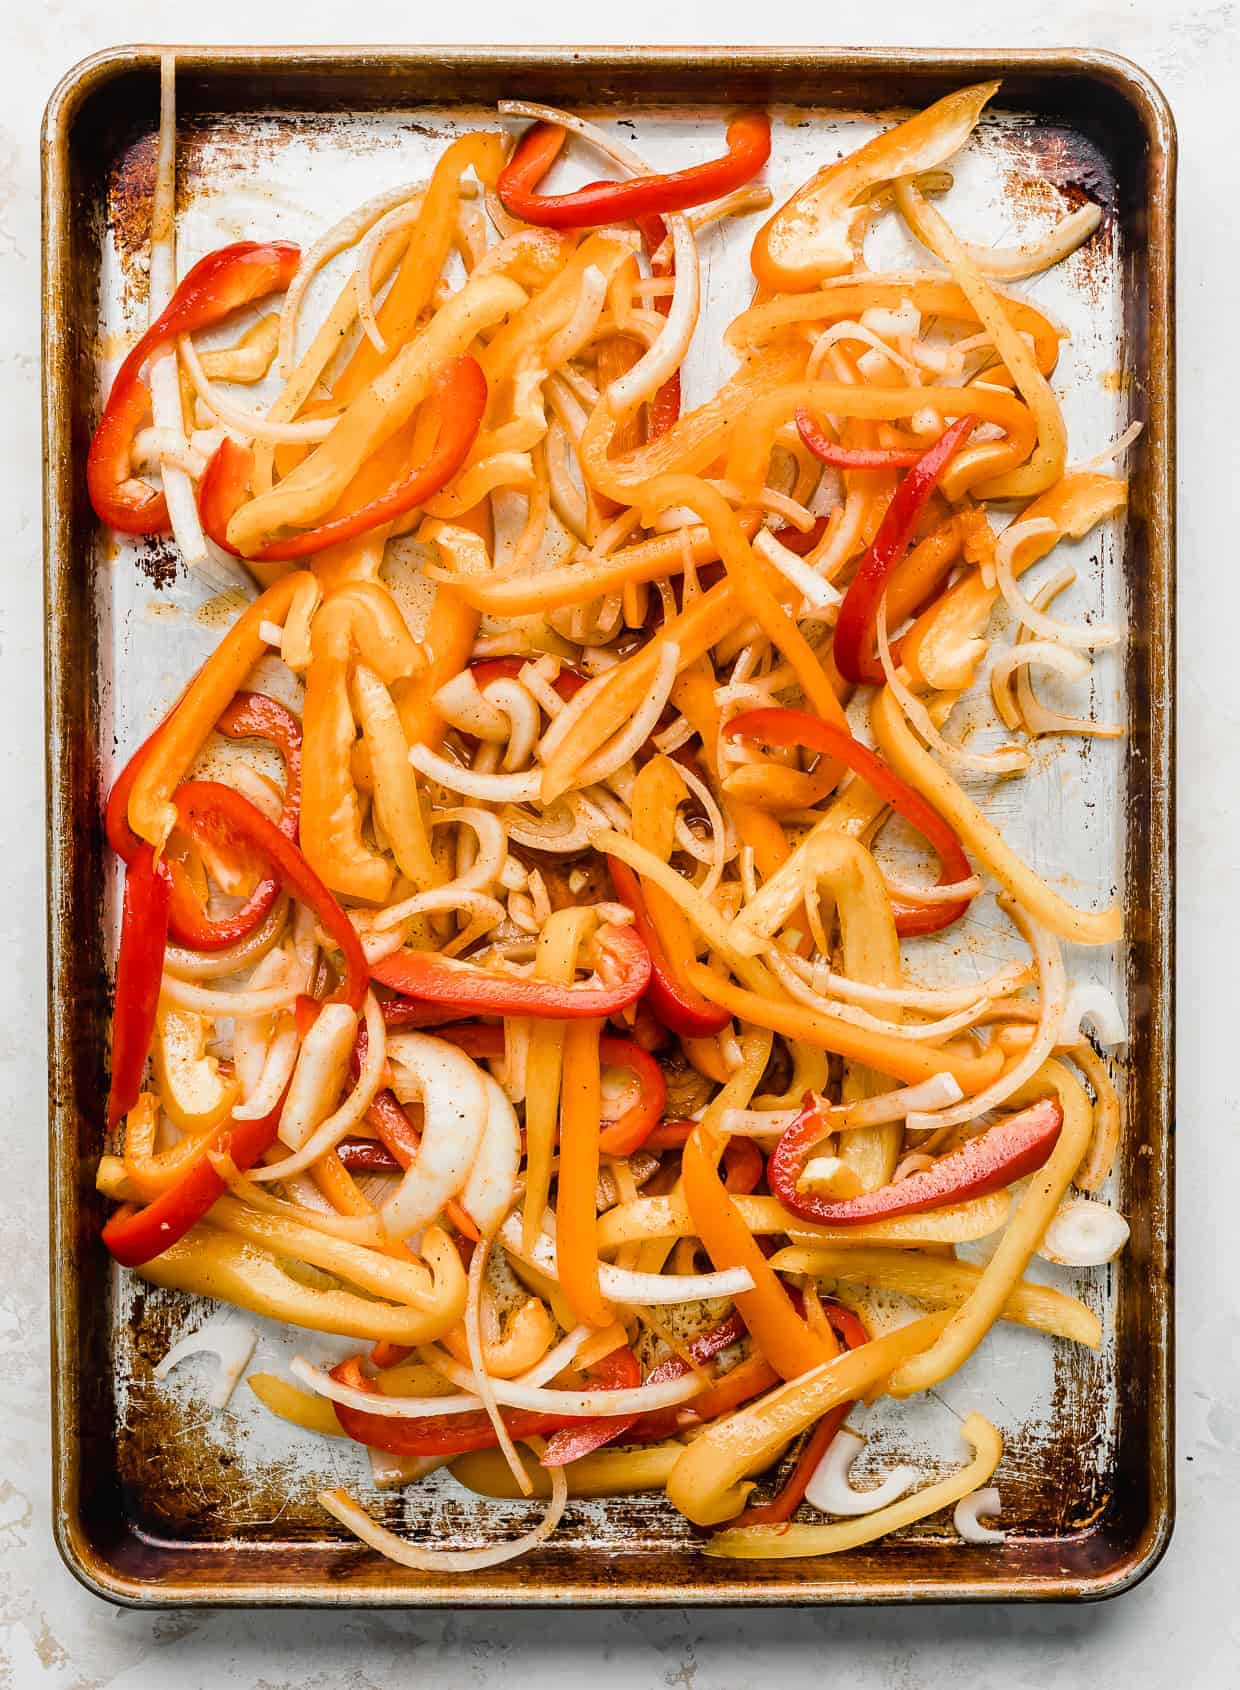 A baking sheet with sliced orange, red, and yellow peppers.